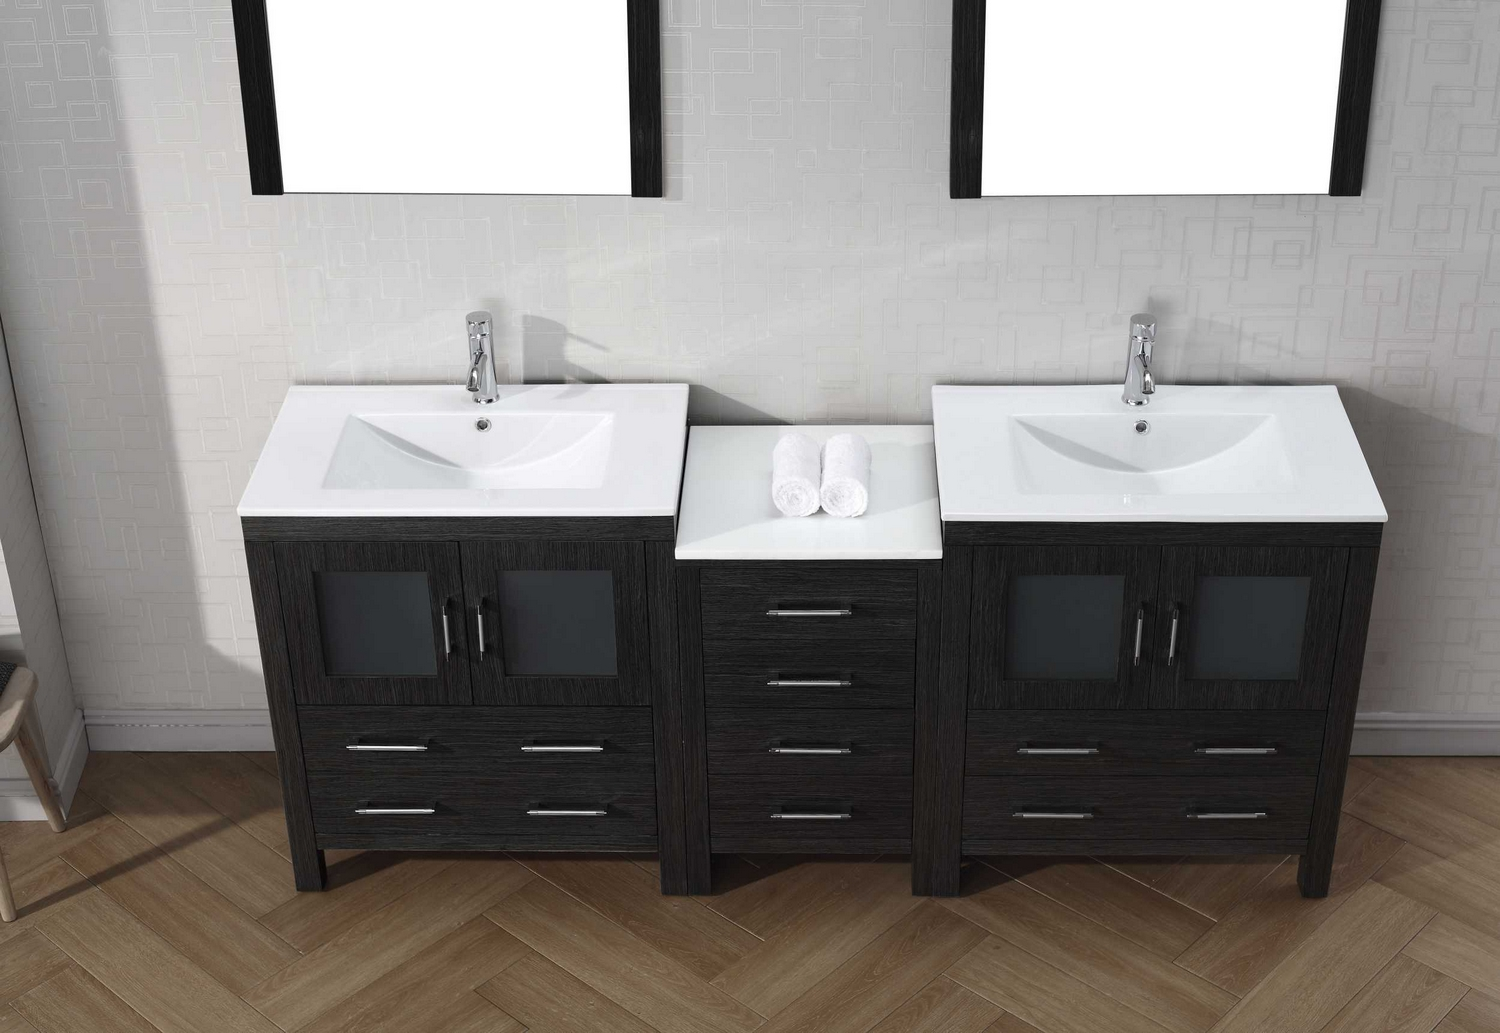 virtu usa dior 78 double bathroom vanity cabinet set in zebra grey